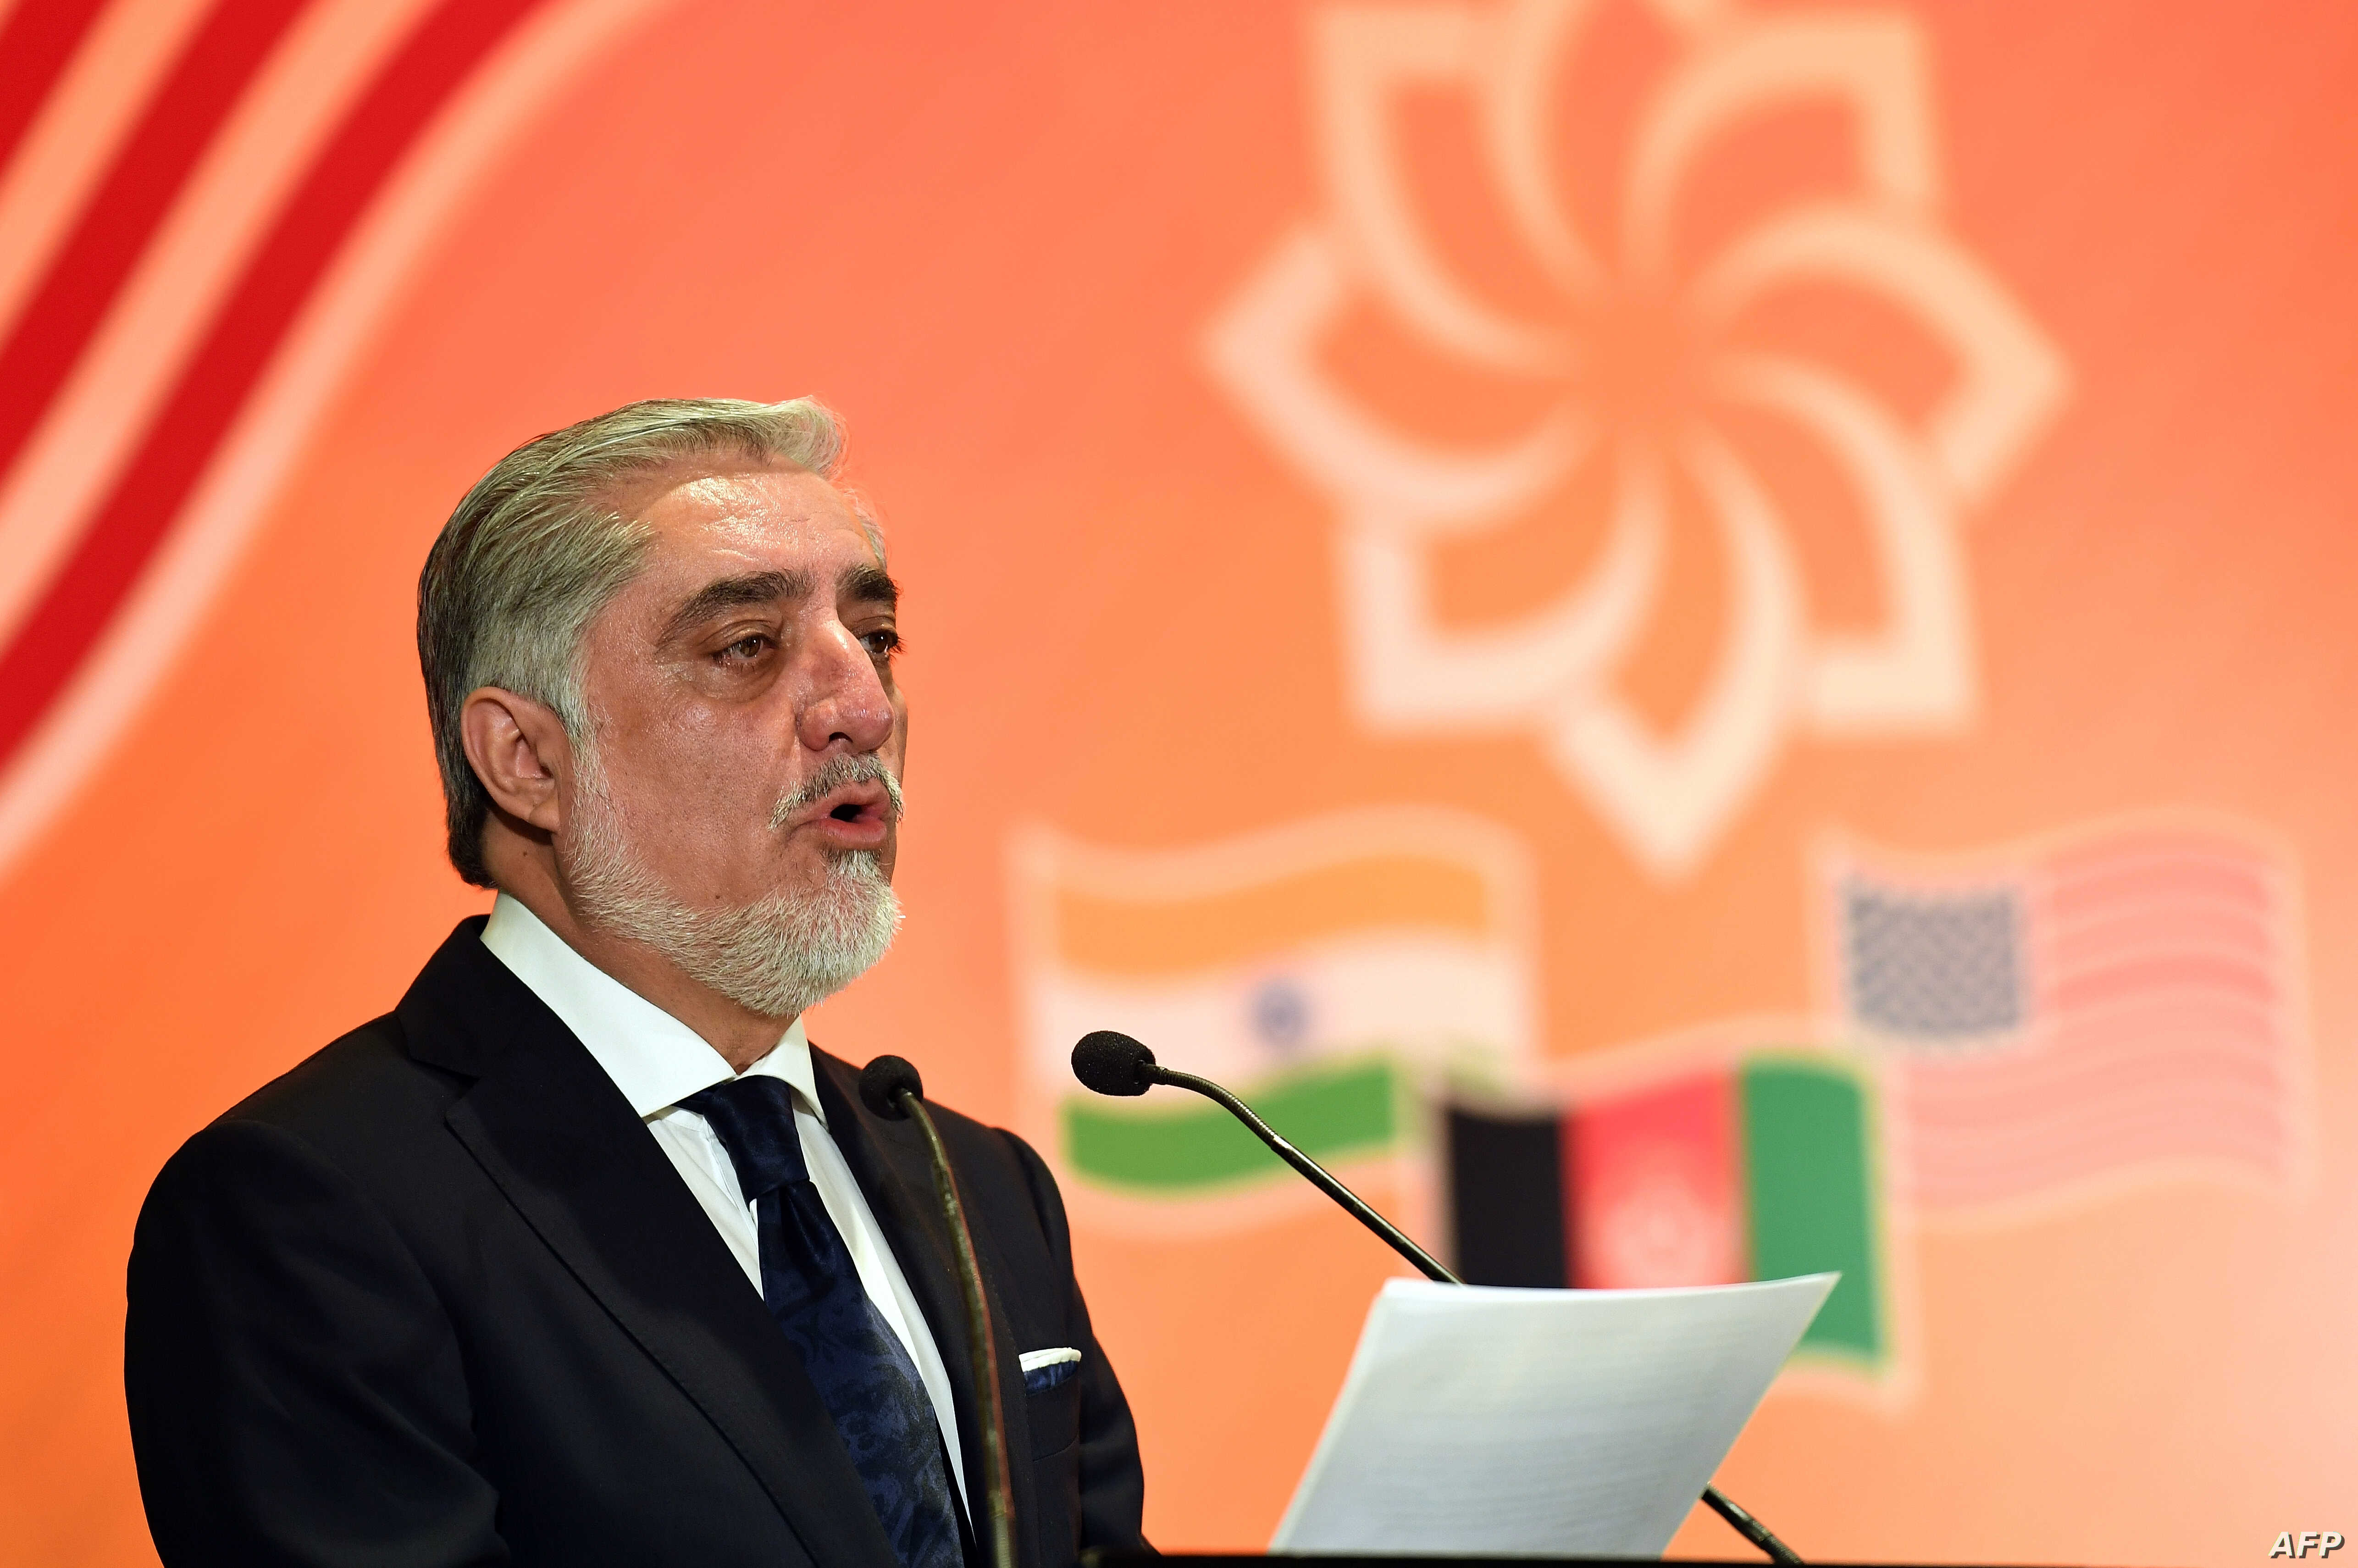 Afghanistan Chief Executive Officer Abdullah Abdullah delivers the keynote address at the US-sponsored trade and investment initiative 'Passage To Prosperity' in the Indian capital in New Delhi on Sept. 28, 2017.